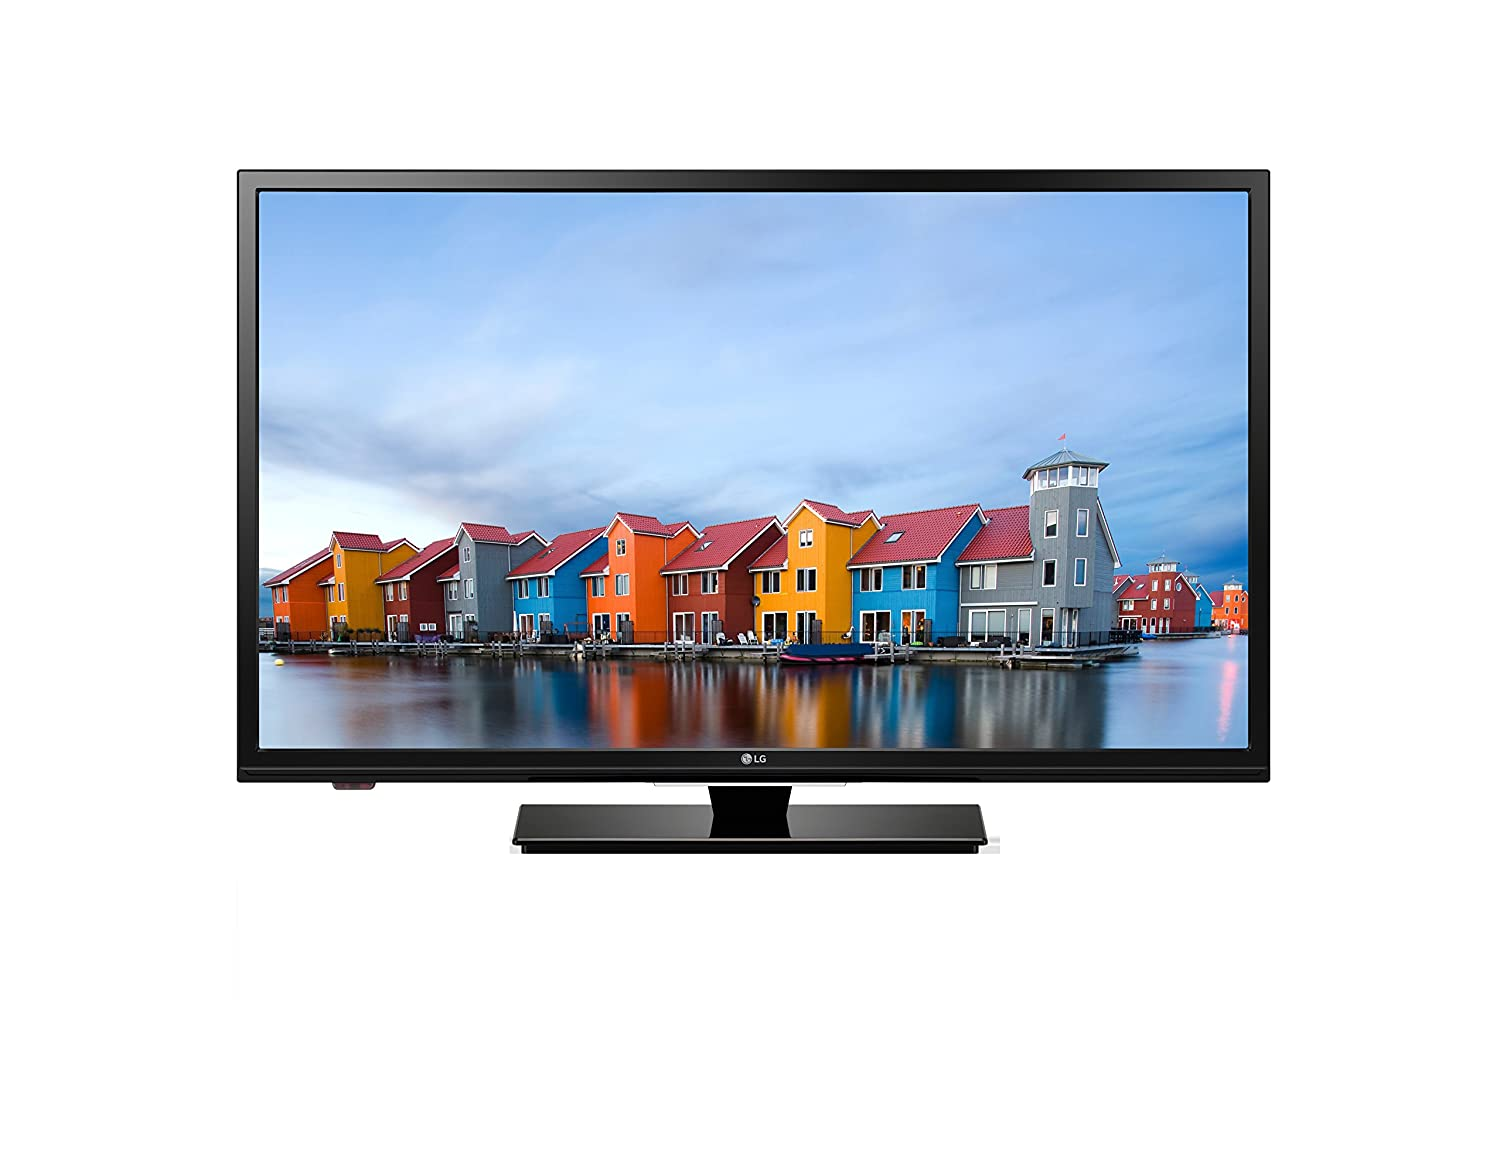 LG Electronics 32LF500B 32-Inch 720p 60Hz LED TV (2015 Model)